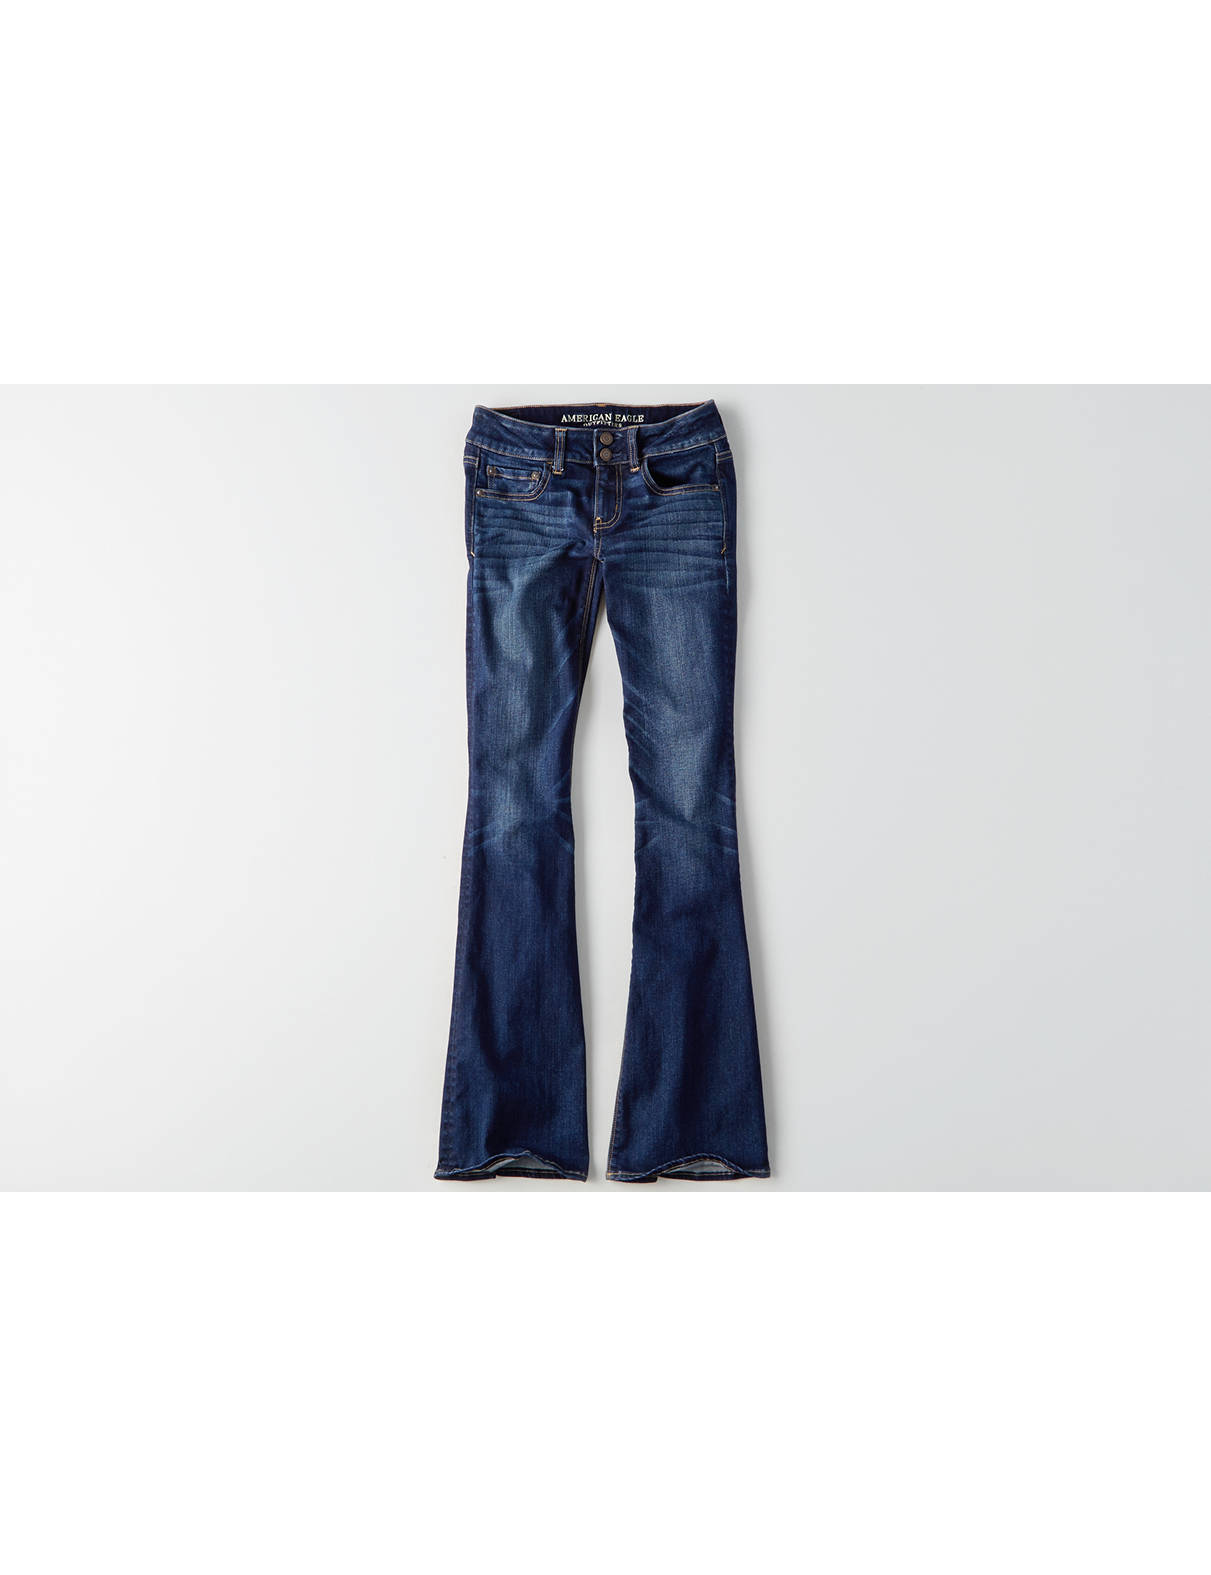 Shop for Flare Jeans, Women's Flare Jeans and Juniors Flare Jeans at Macy's. Find the best selection at great prices for the entire family.